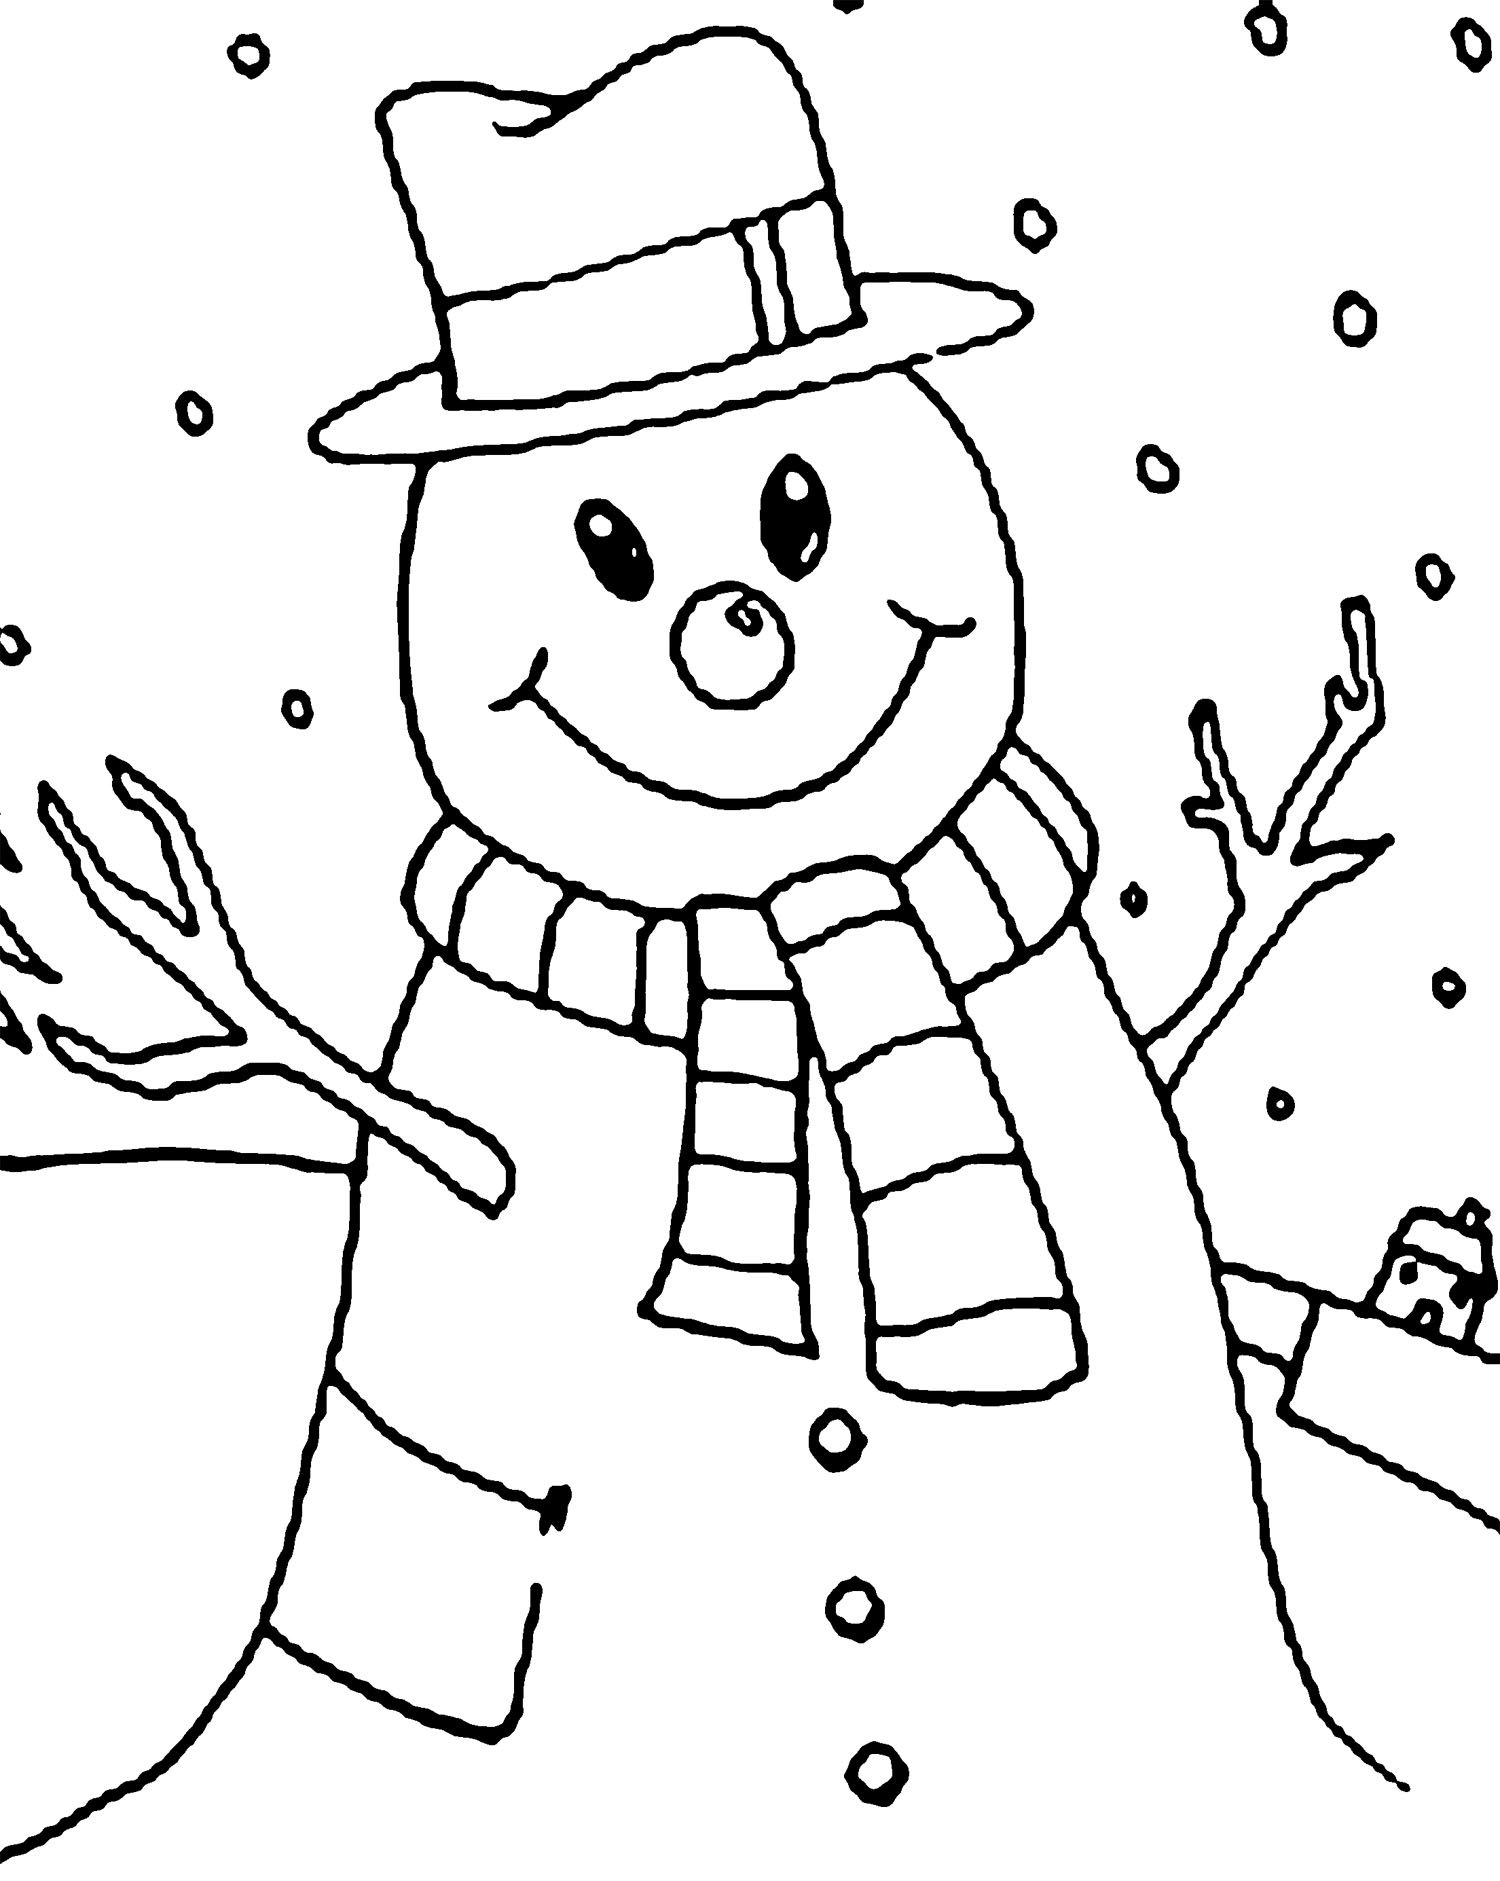 1500x1881 Winter Snowman Coloring Page Winter Snowman